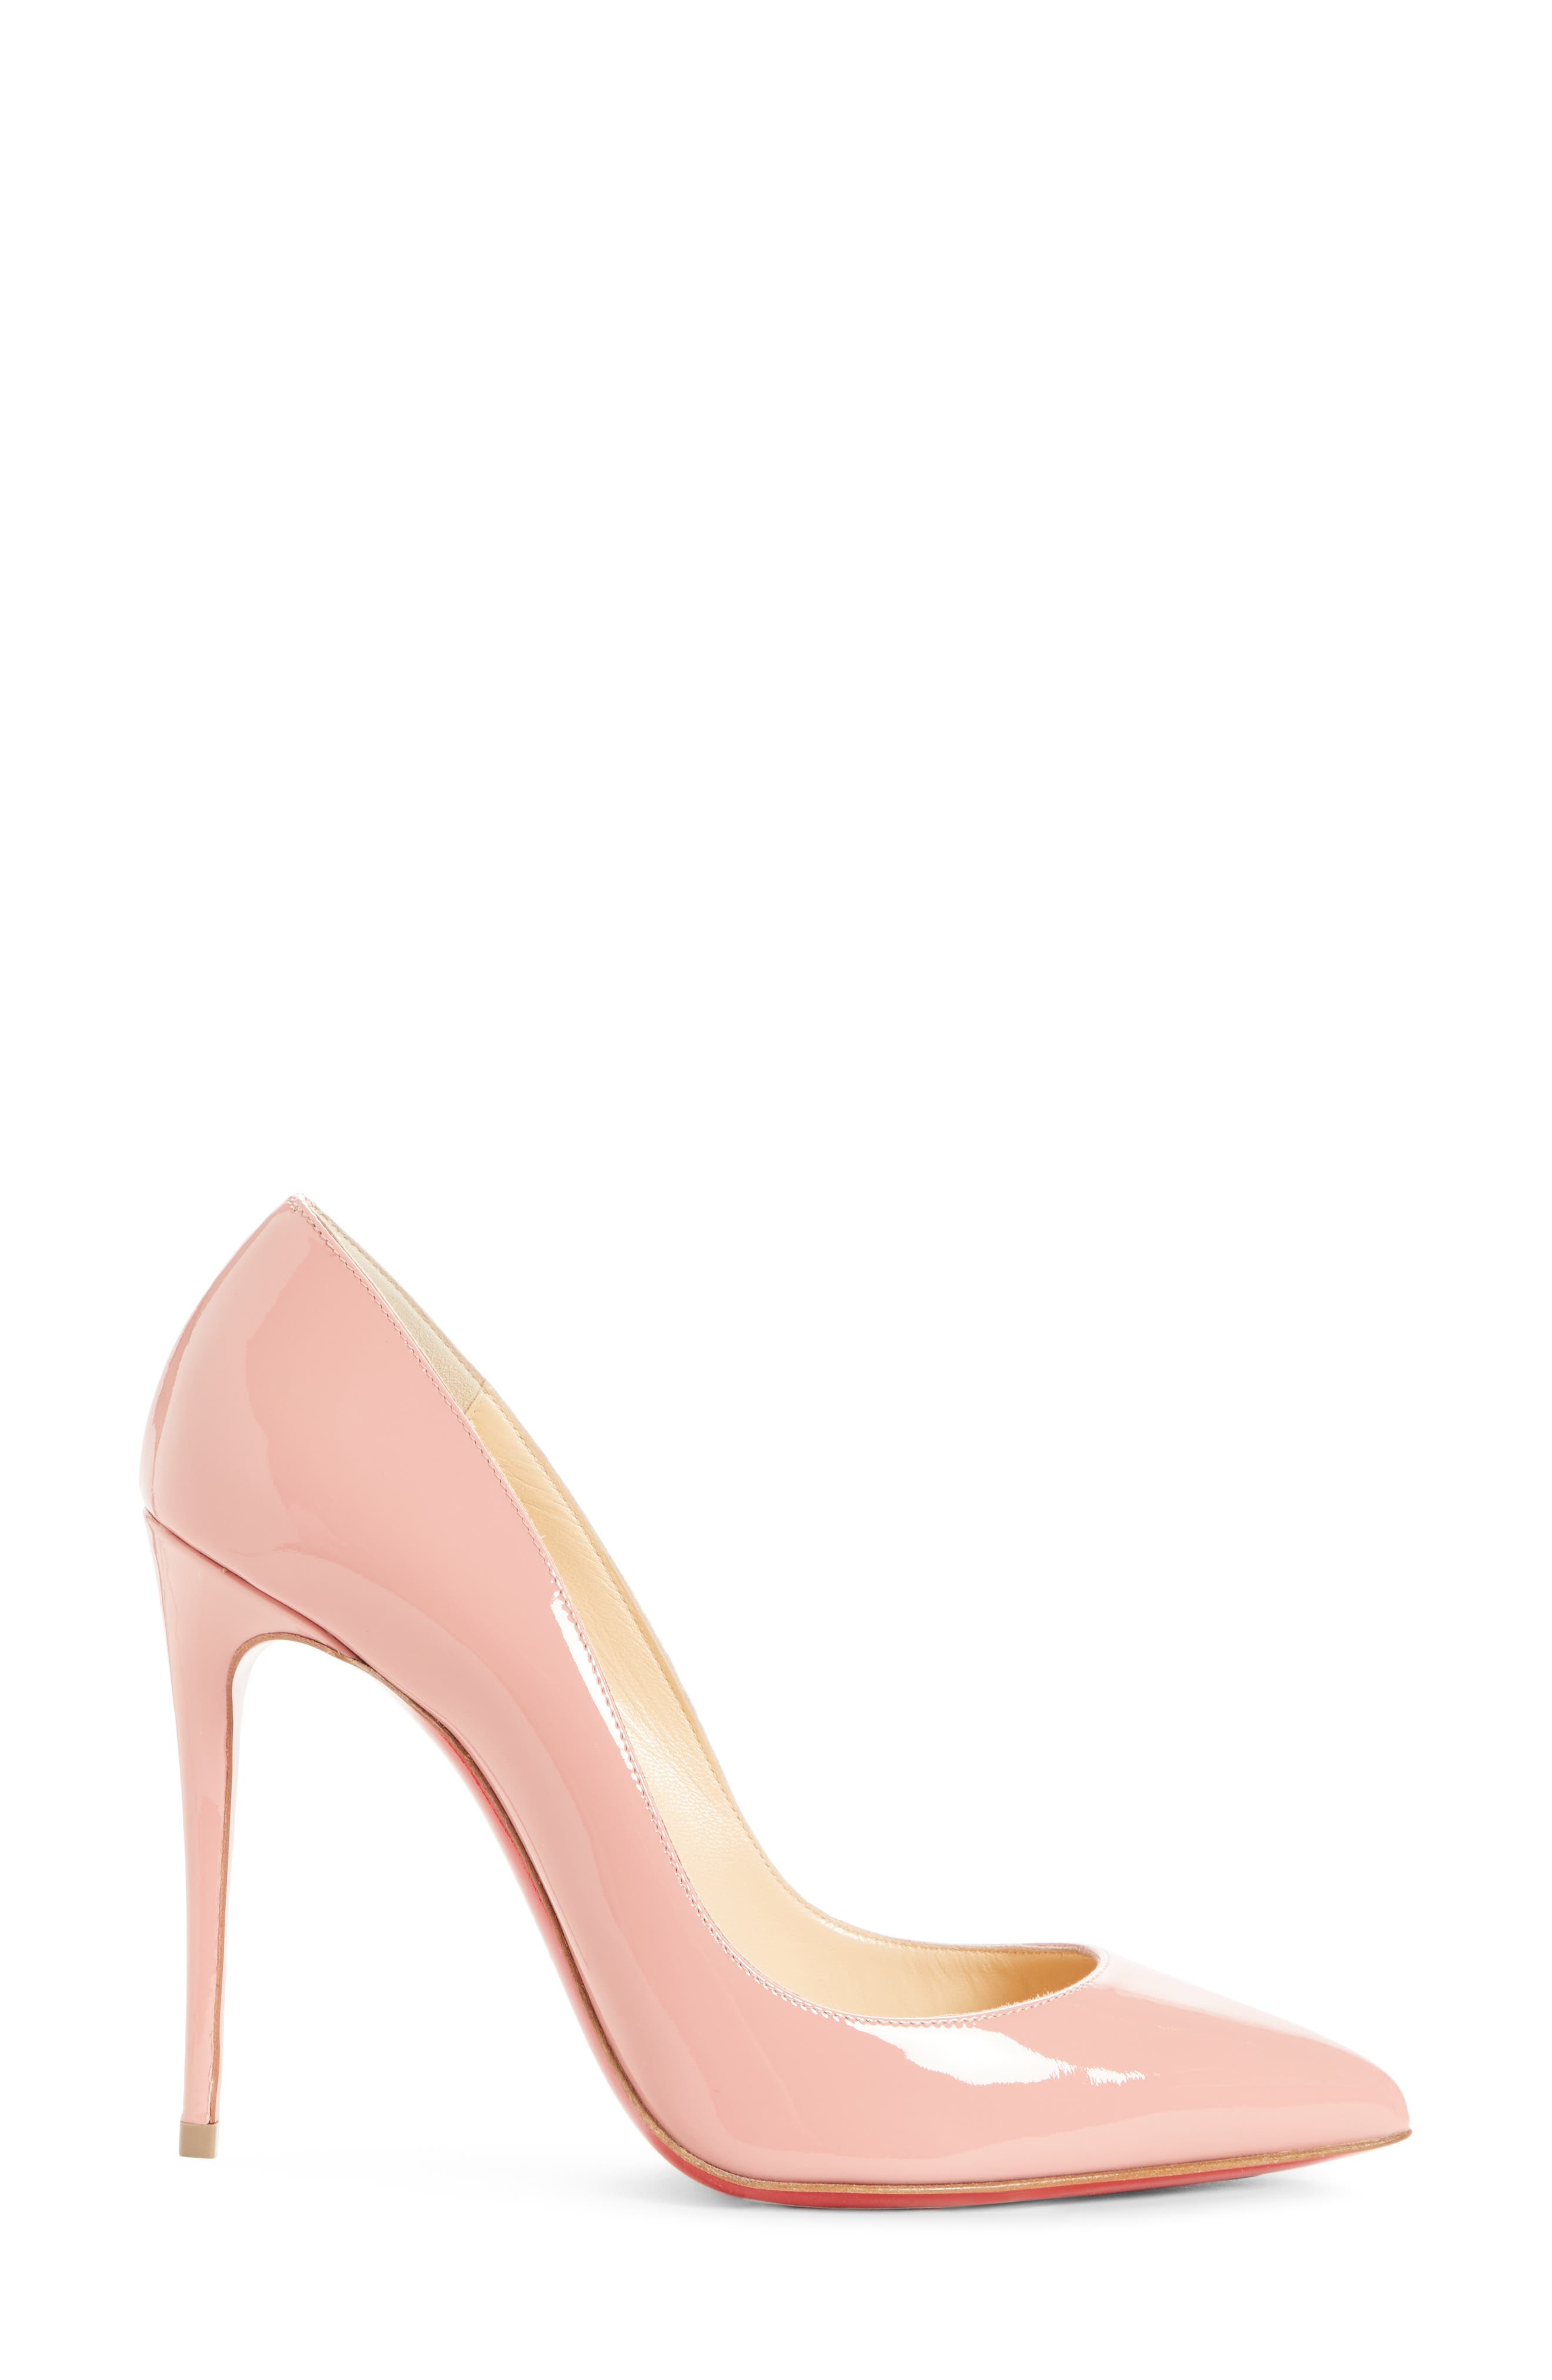 'Pigalle Follies' Pointy Toe Pump,                             Alternate thumbnail 3, color,                             Marshmallow Pink